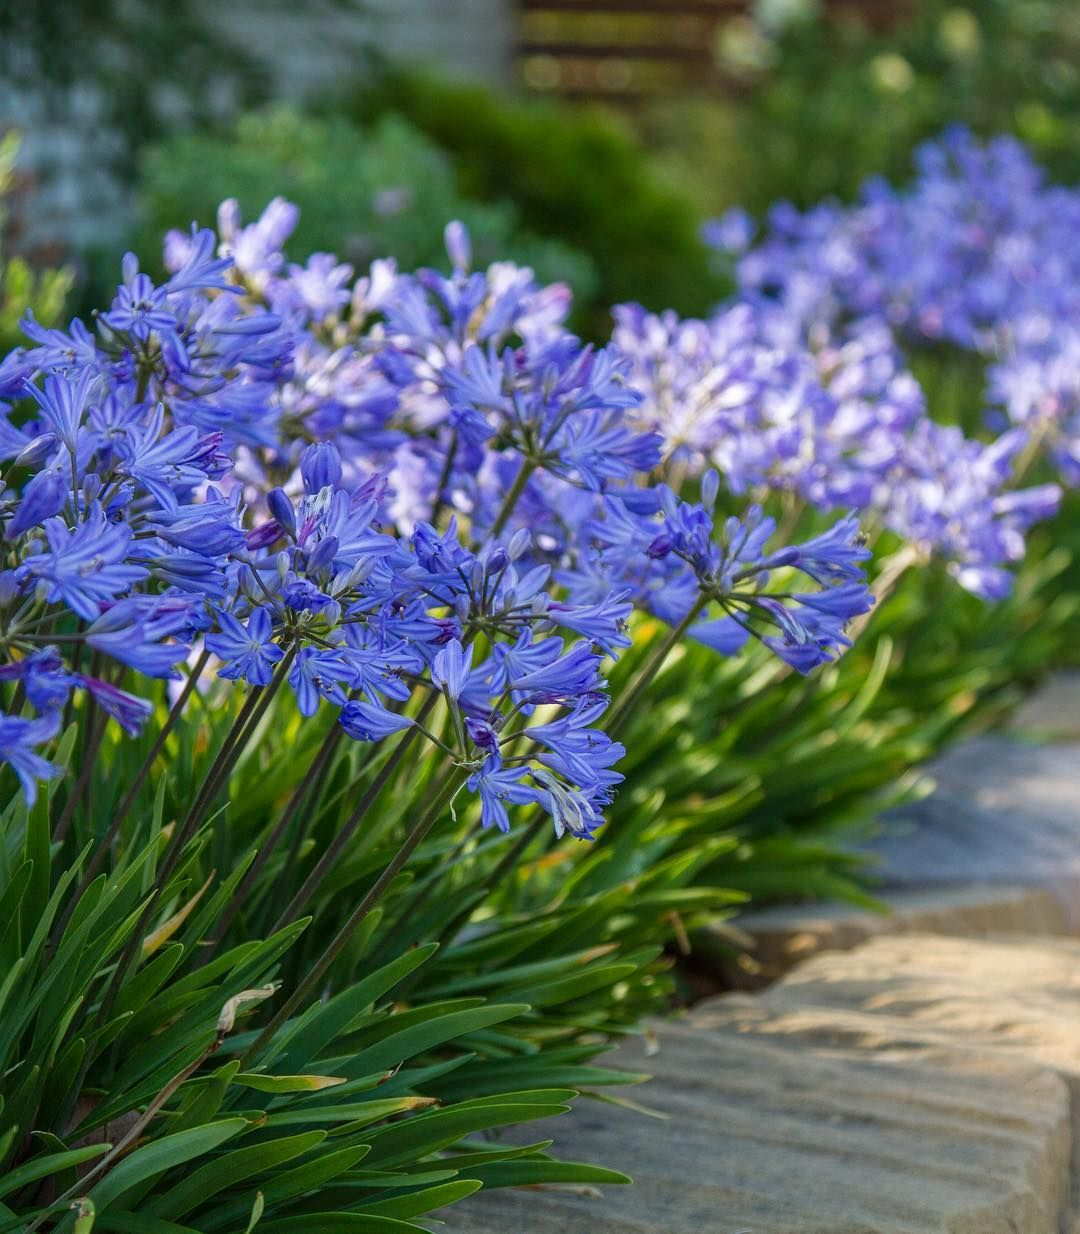 Plants Management Australia On Instagram Agapanthus Baby Pete Is The Very Definition Of A Cool Plant Icy Blue Flowers Look Plants Cool Plants Agapanthus